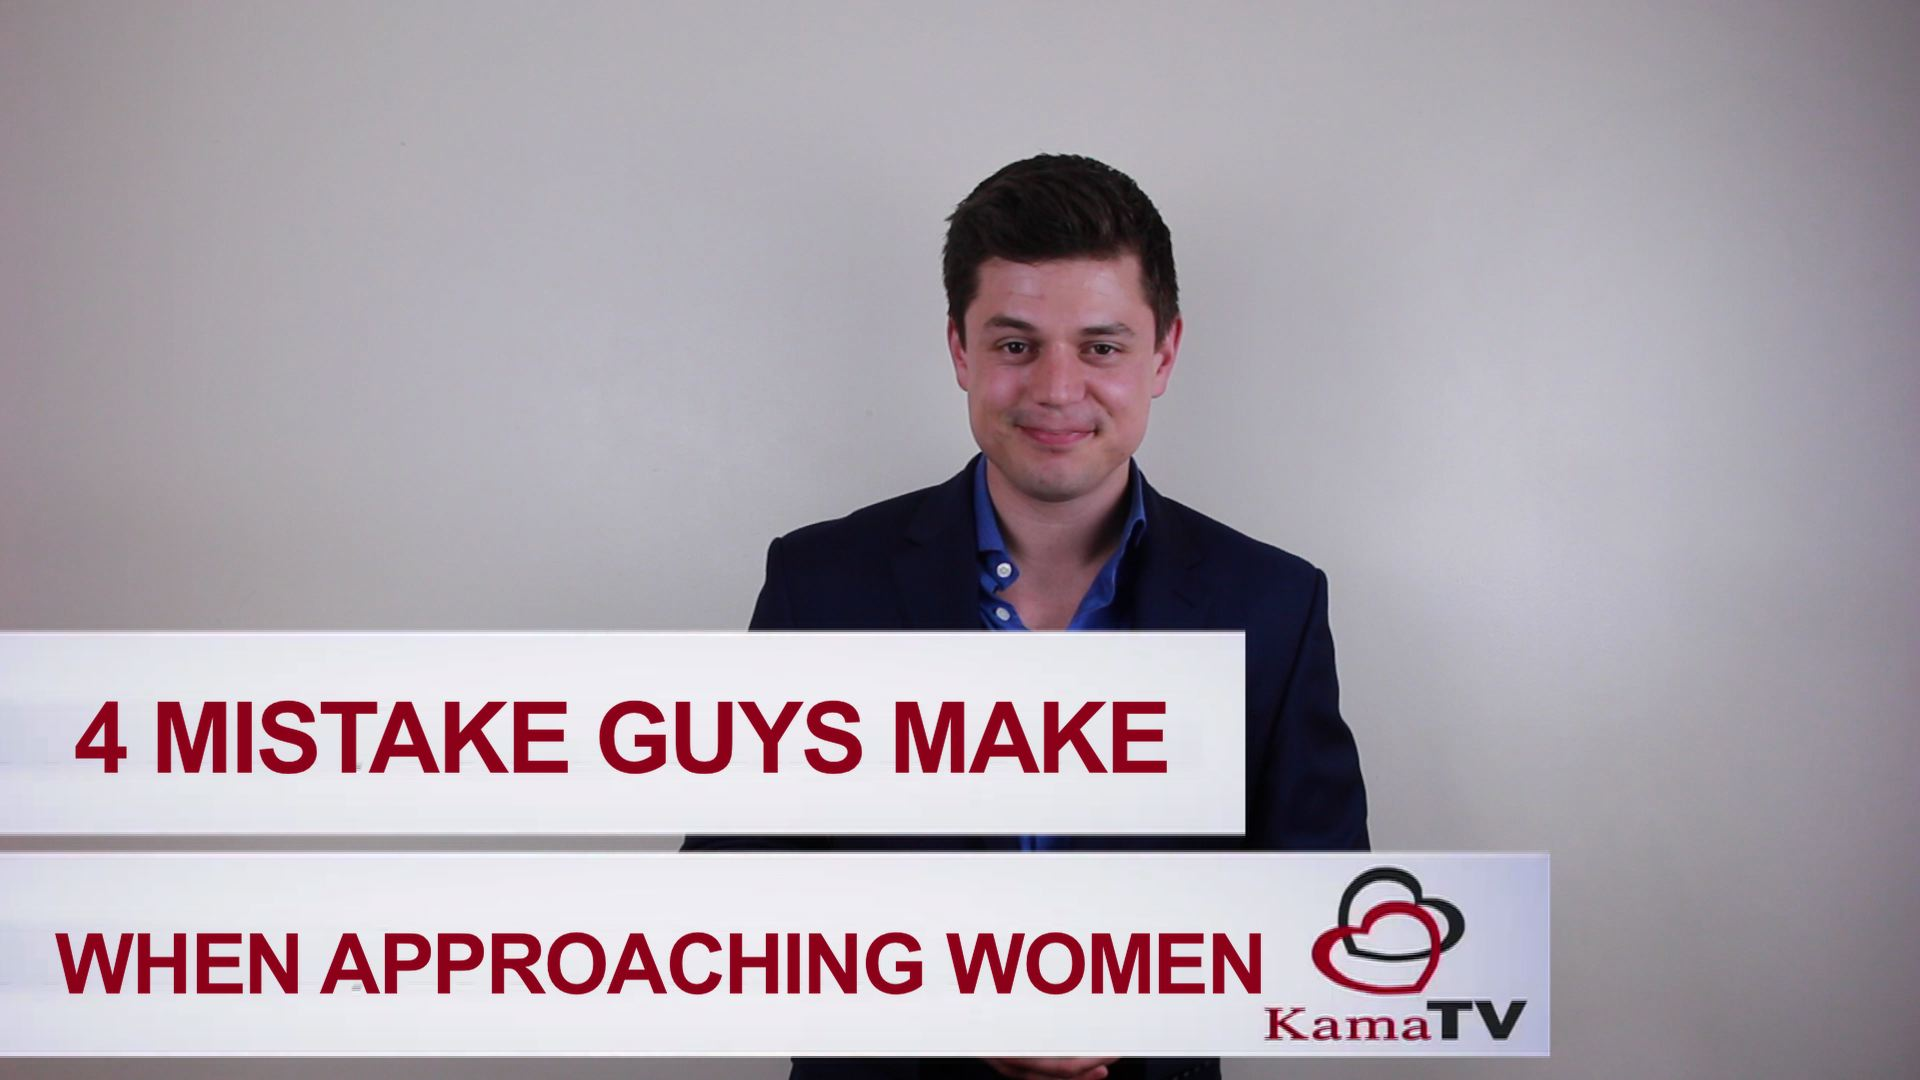 4 mistake guys make when approaching women